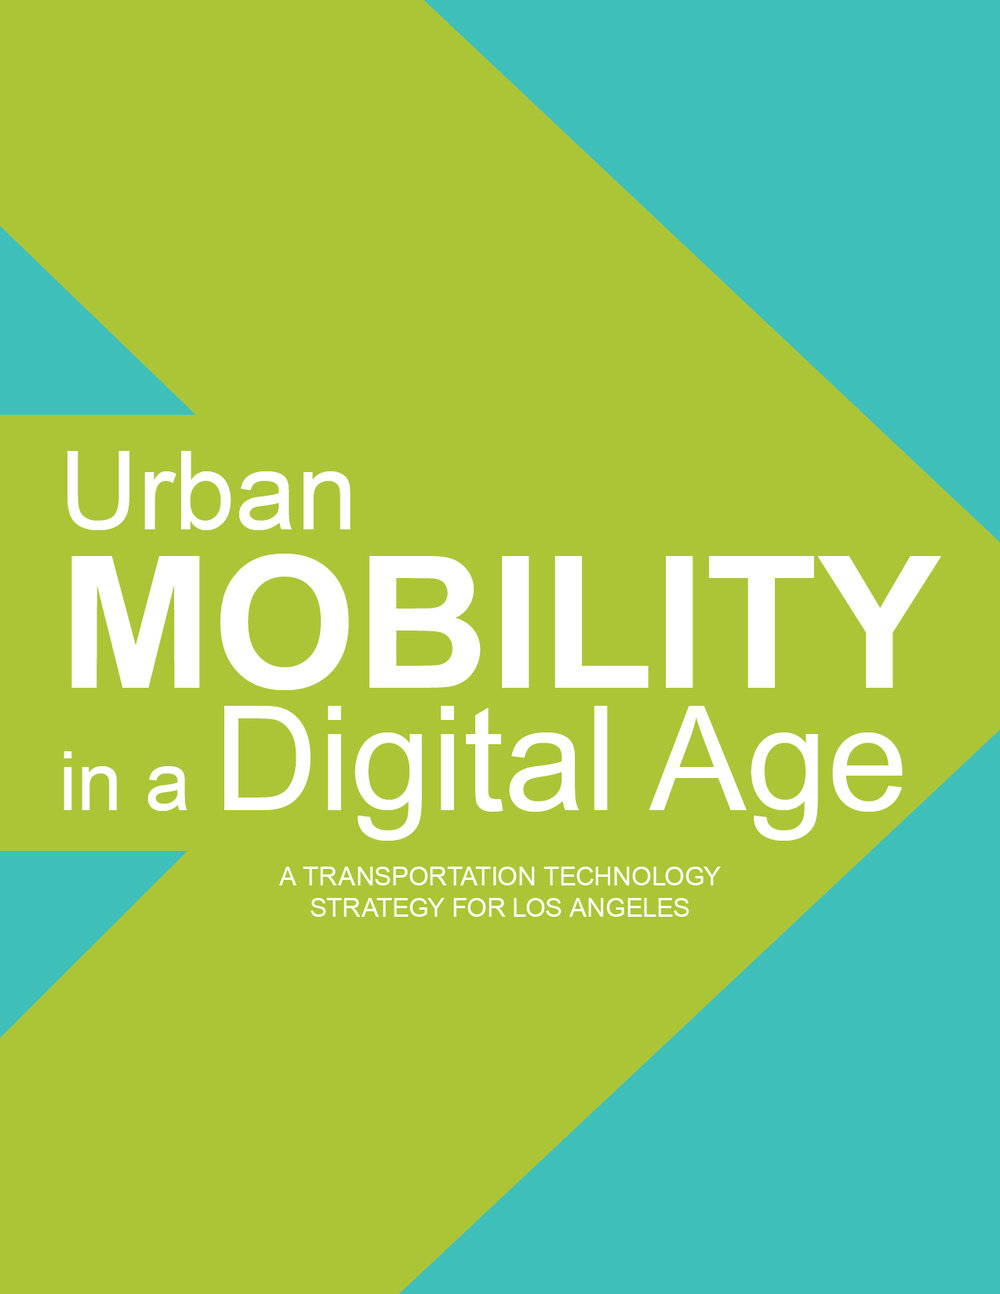 Urban Mobility in a Digital Age